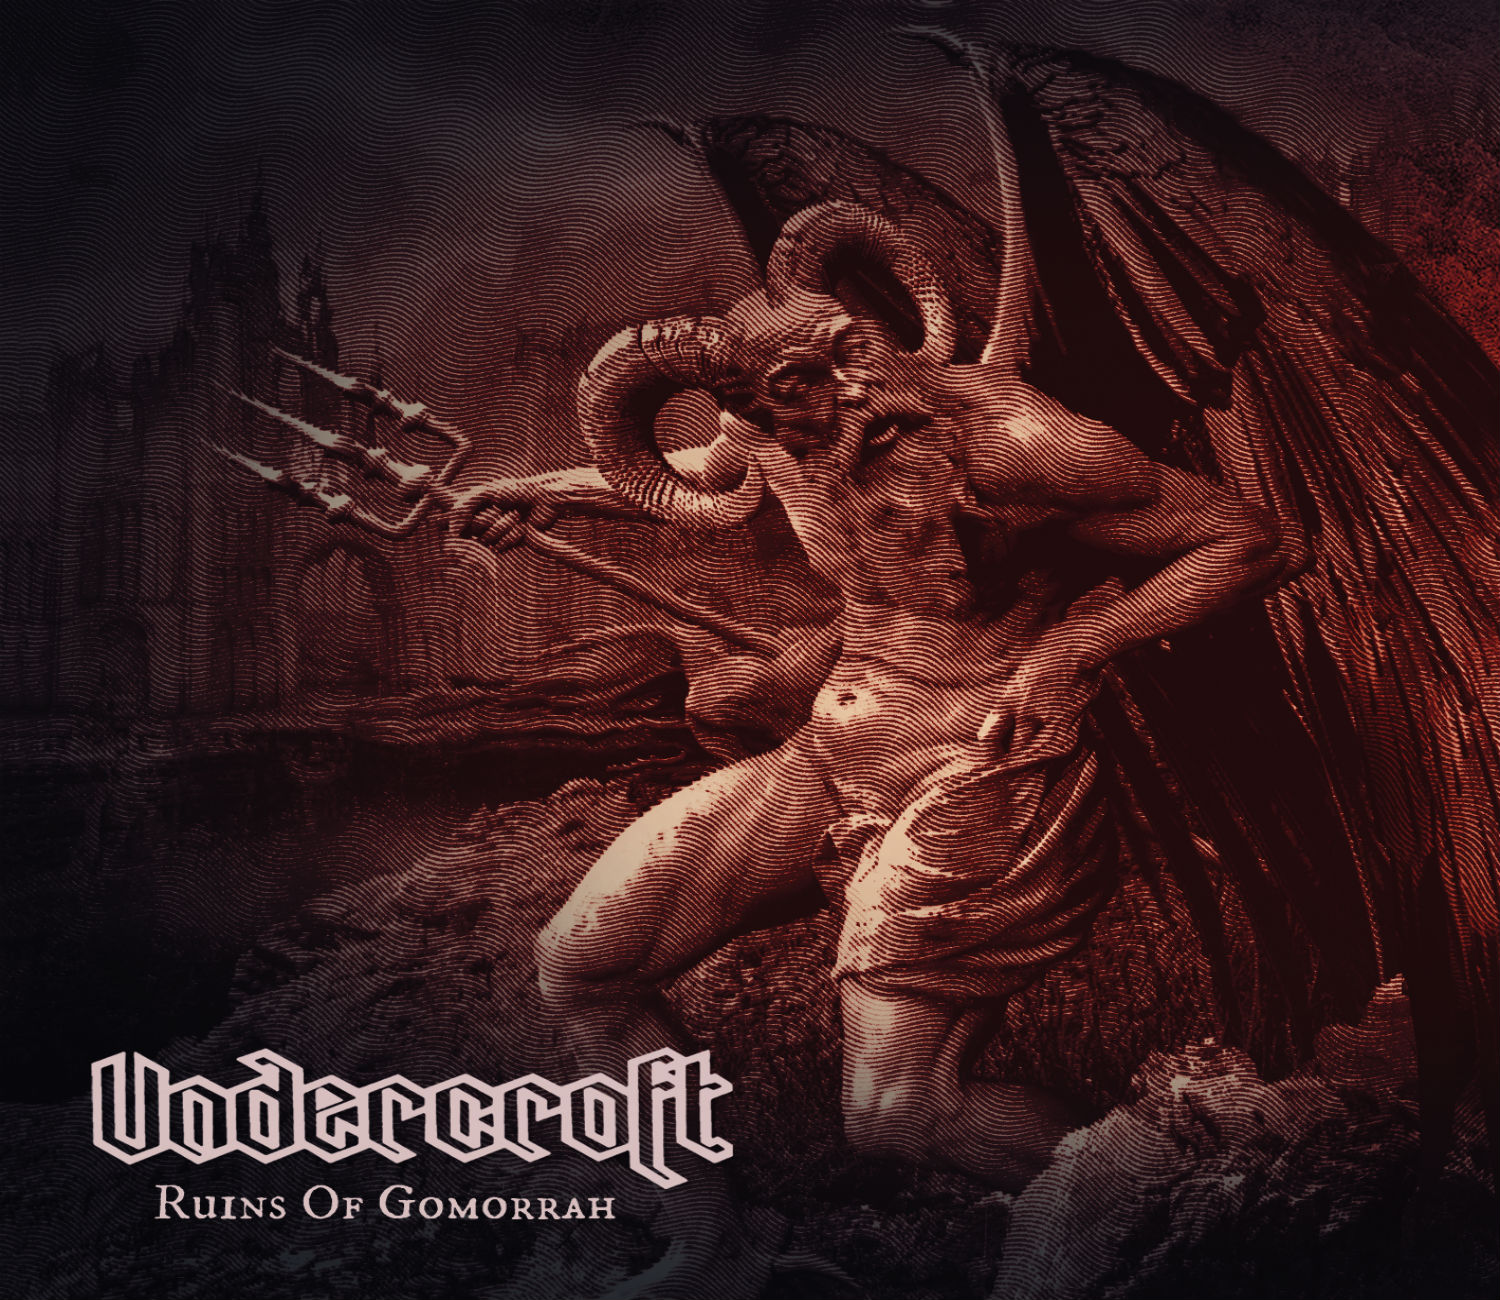 UNDERCROFT thrash death metal heavy dark fantasy demon    f